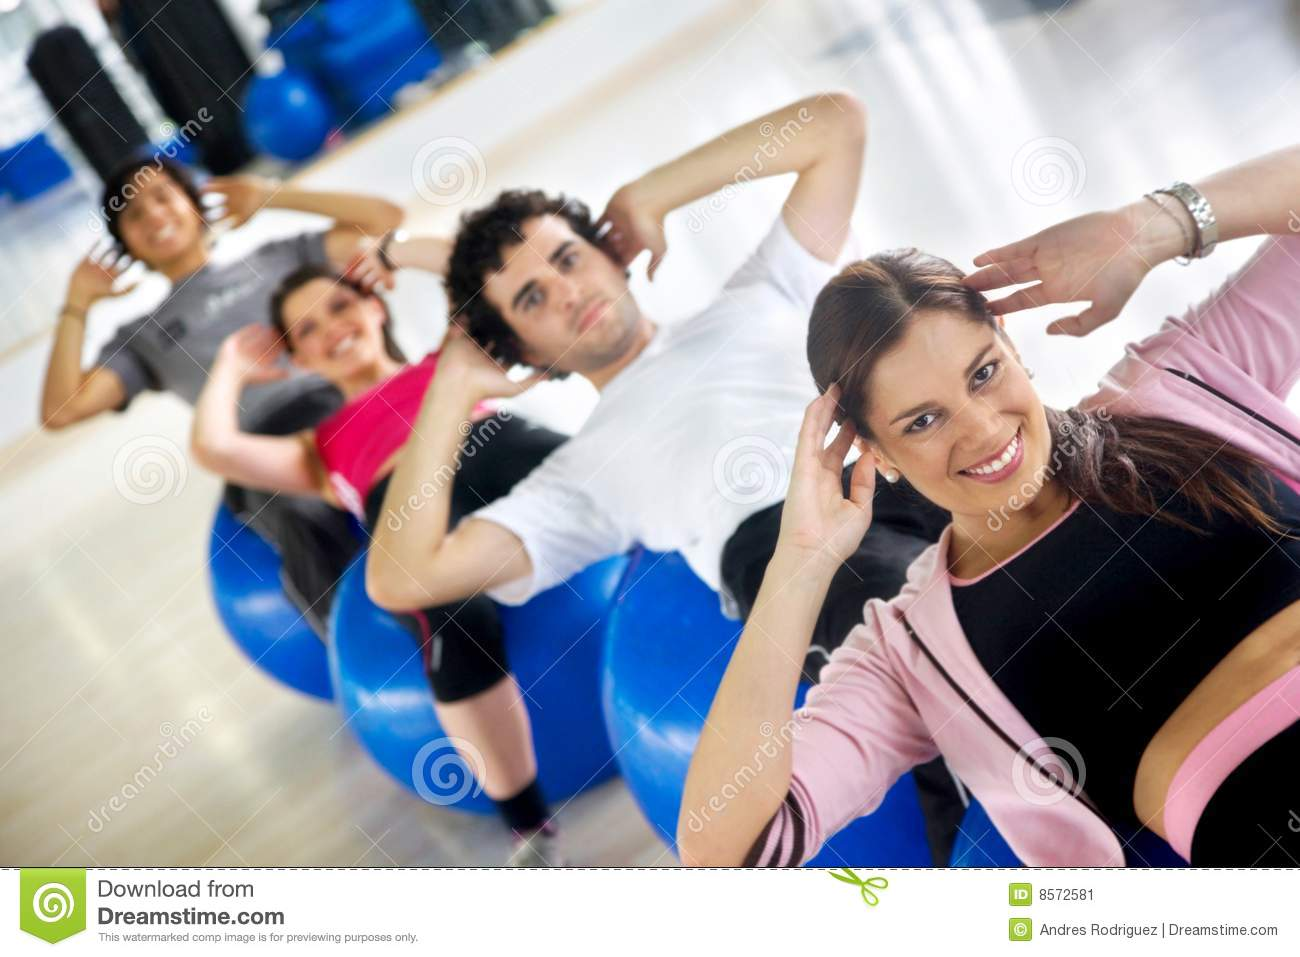 Gym Workout Girl Wallpaper People Doing Sit Ups Stock Image Image Of Happy Crutches